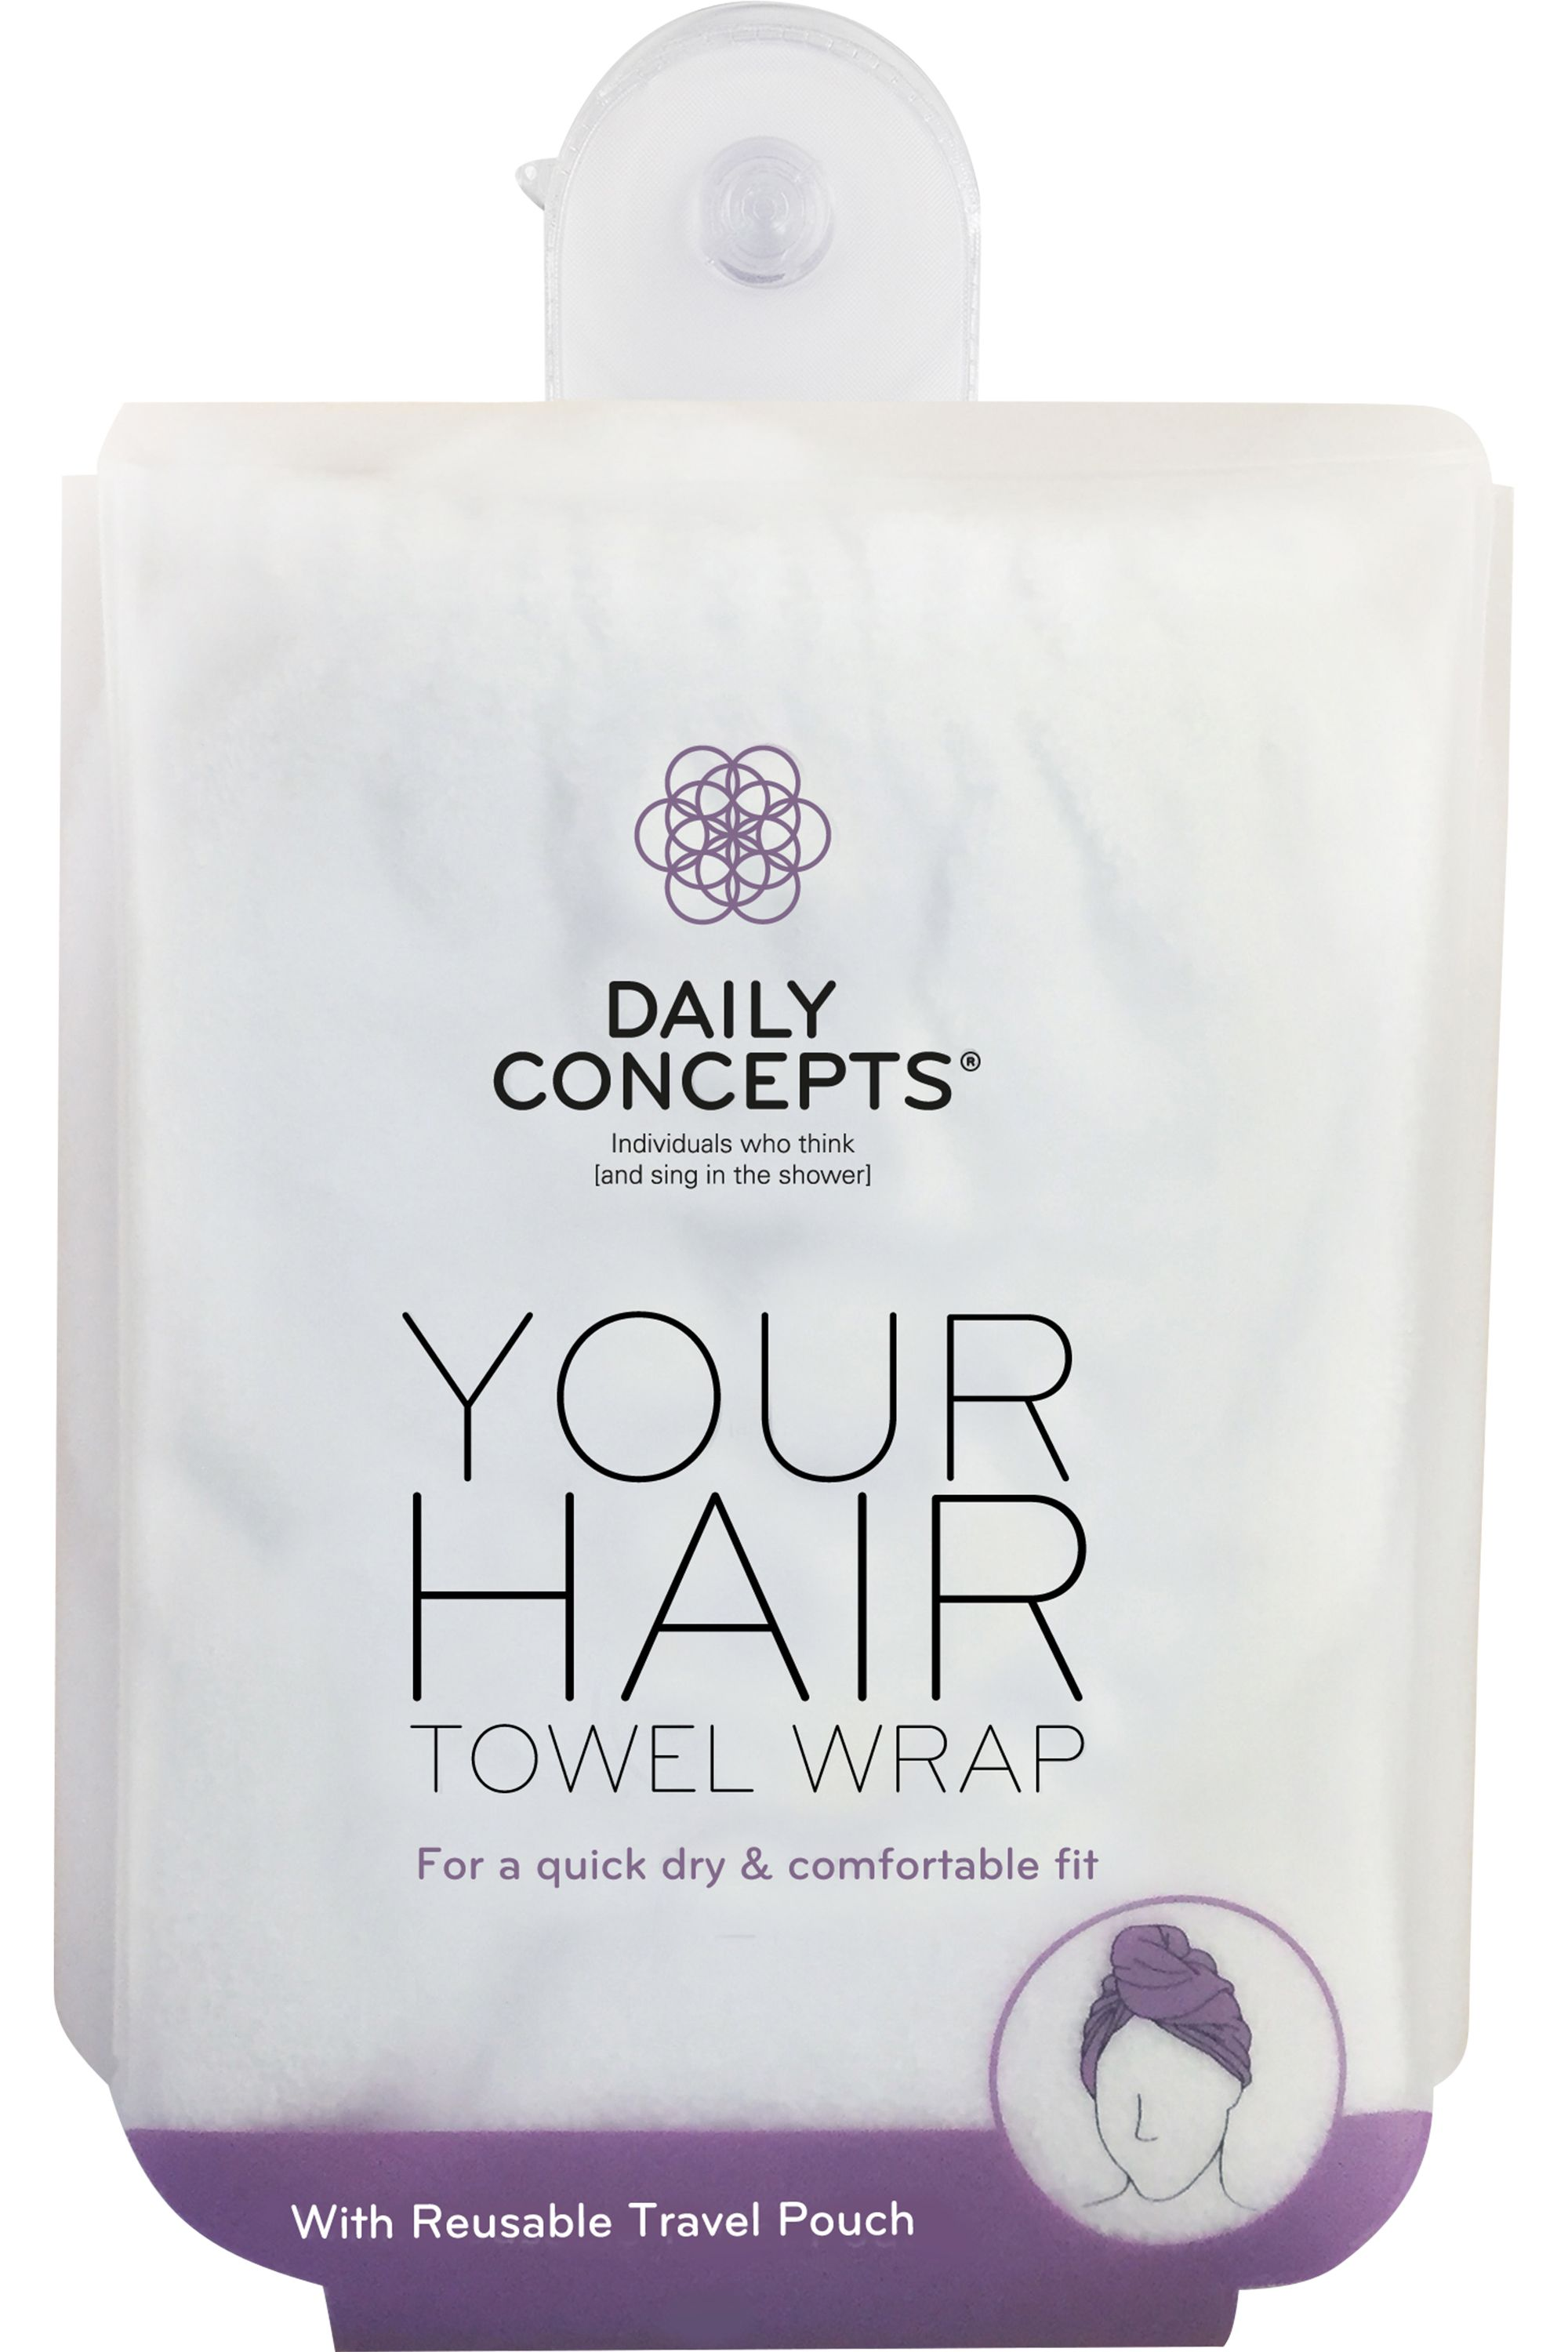 Blissim : Daily Concepts - Serviette absorbante cheveux Your Hair Towel Wrap - Serviette absorbante cheveux Your Hair Towel Wrap